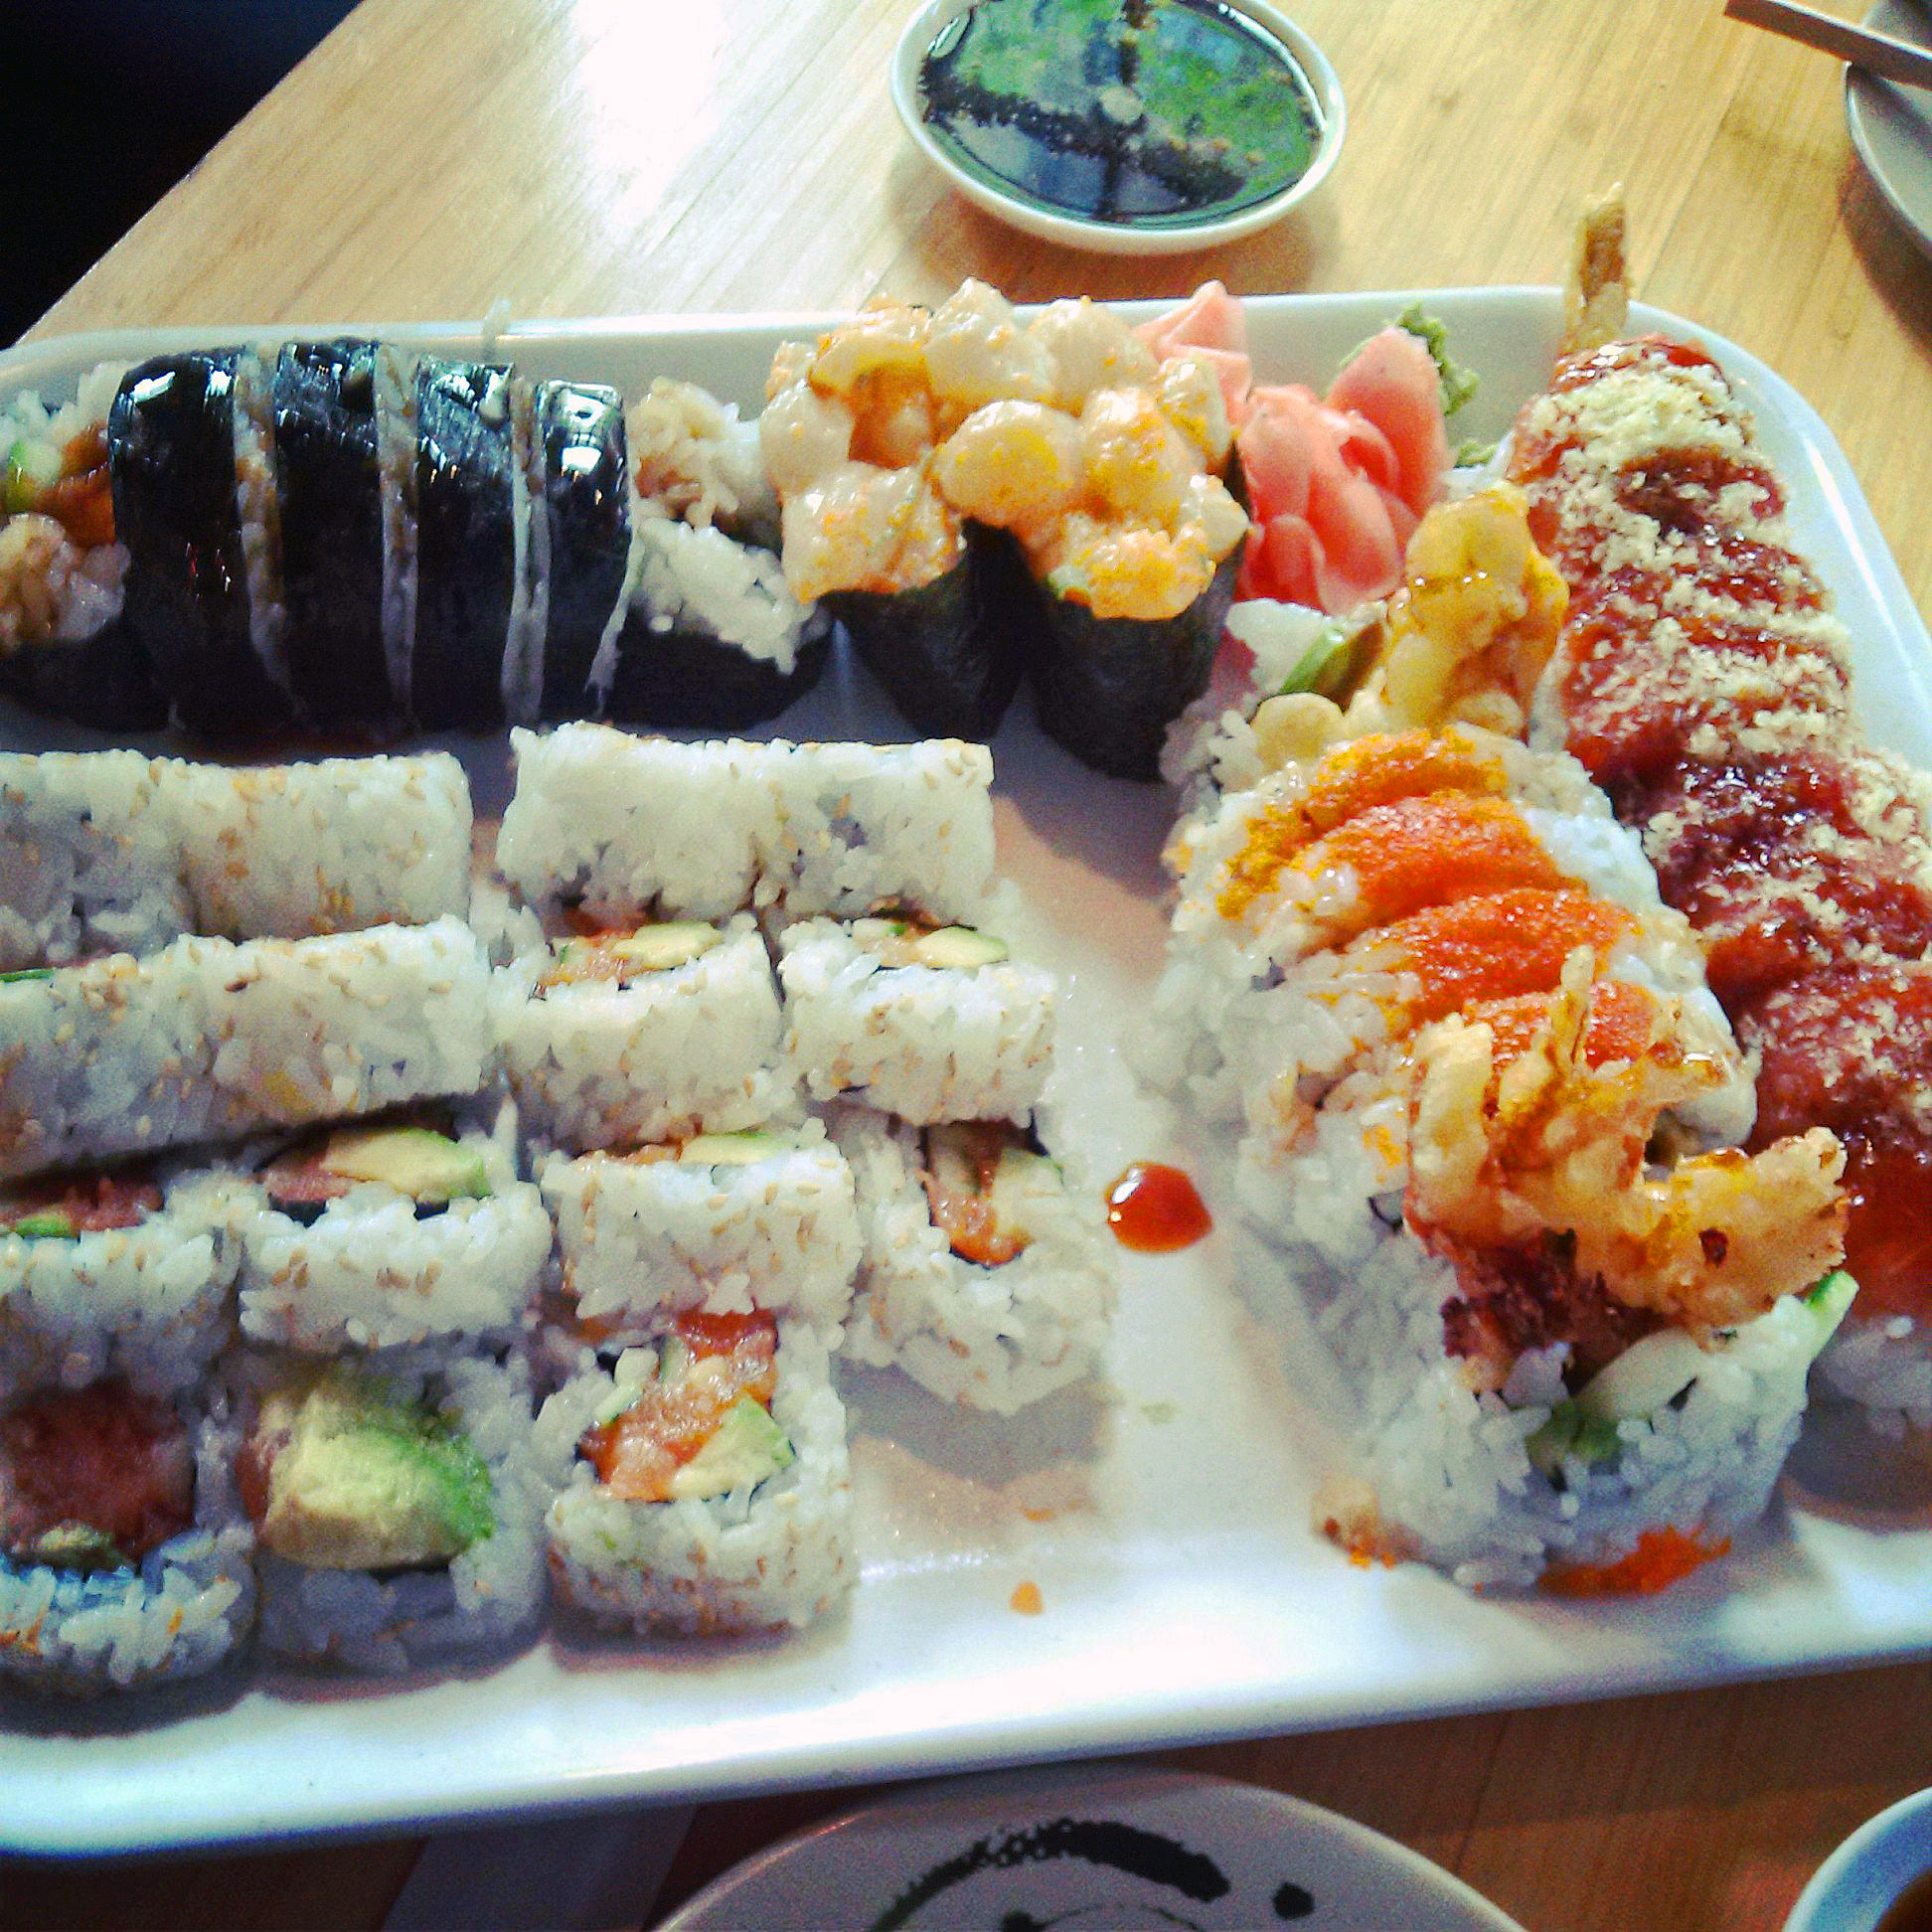 More Sushi Please